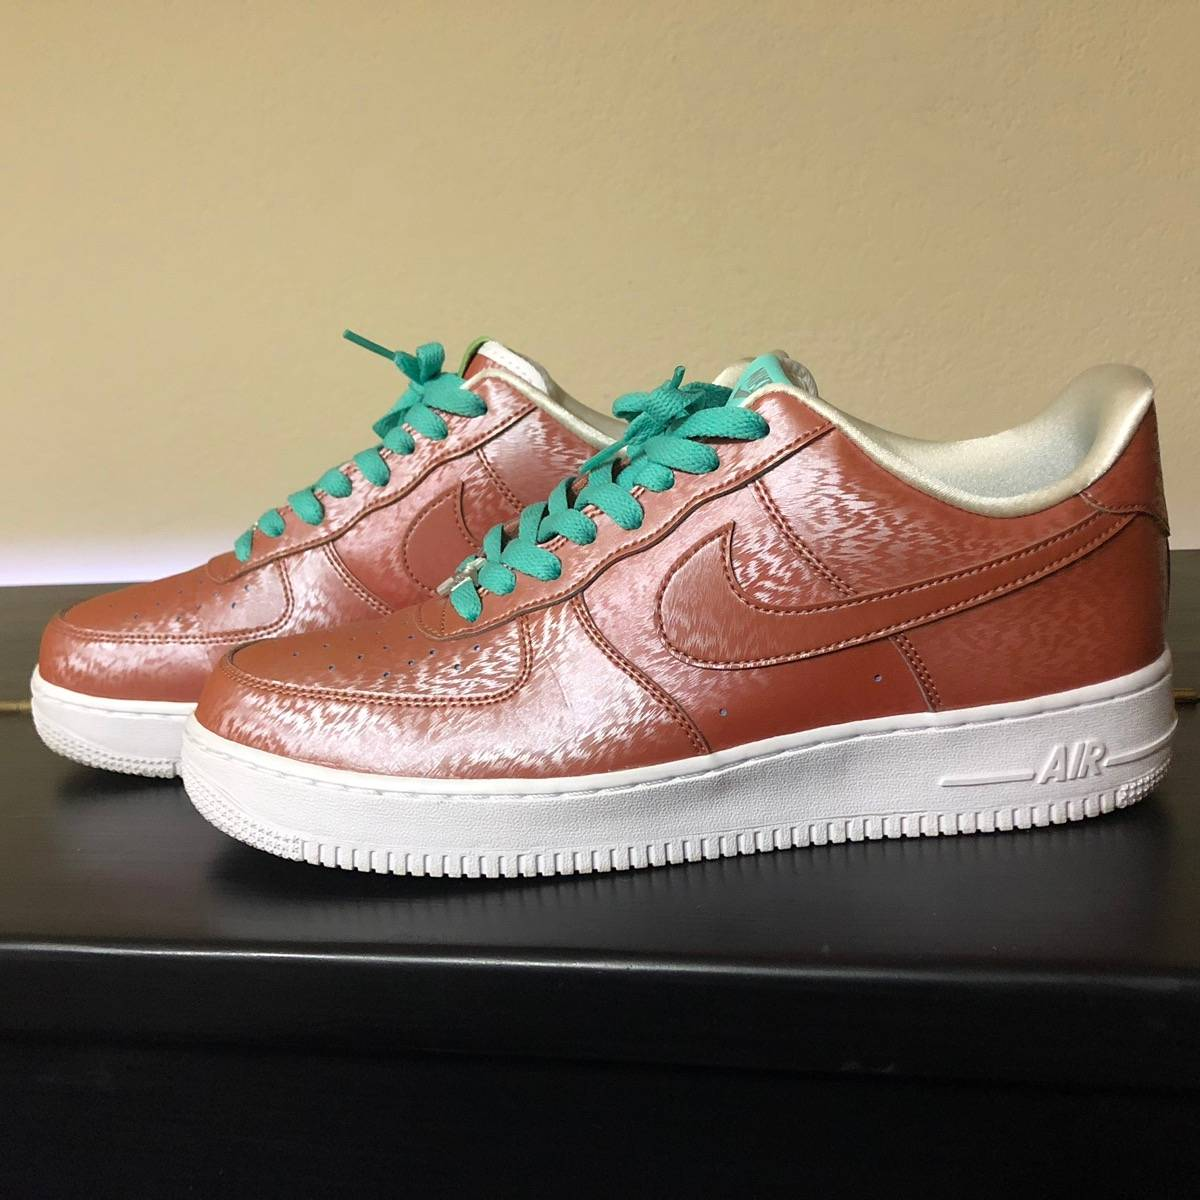 sports shoes e3675 a268d Nike Air Force 1 Low Lady Liberty Mens 11.5 Size 11.5 $112